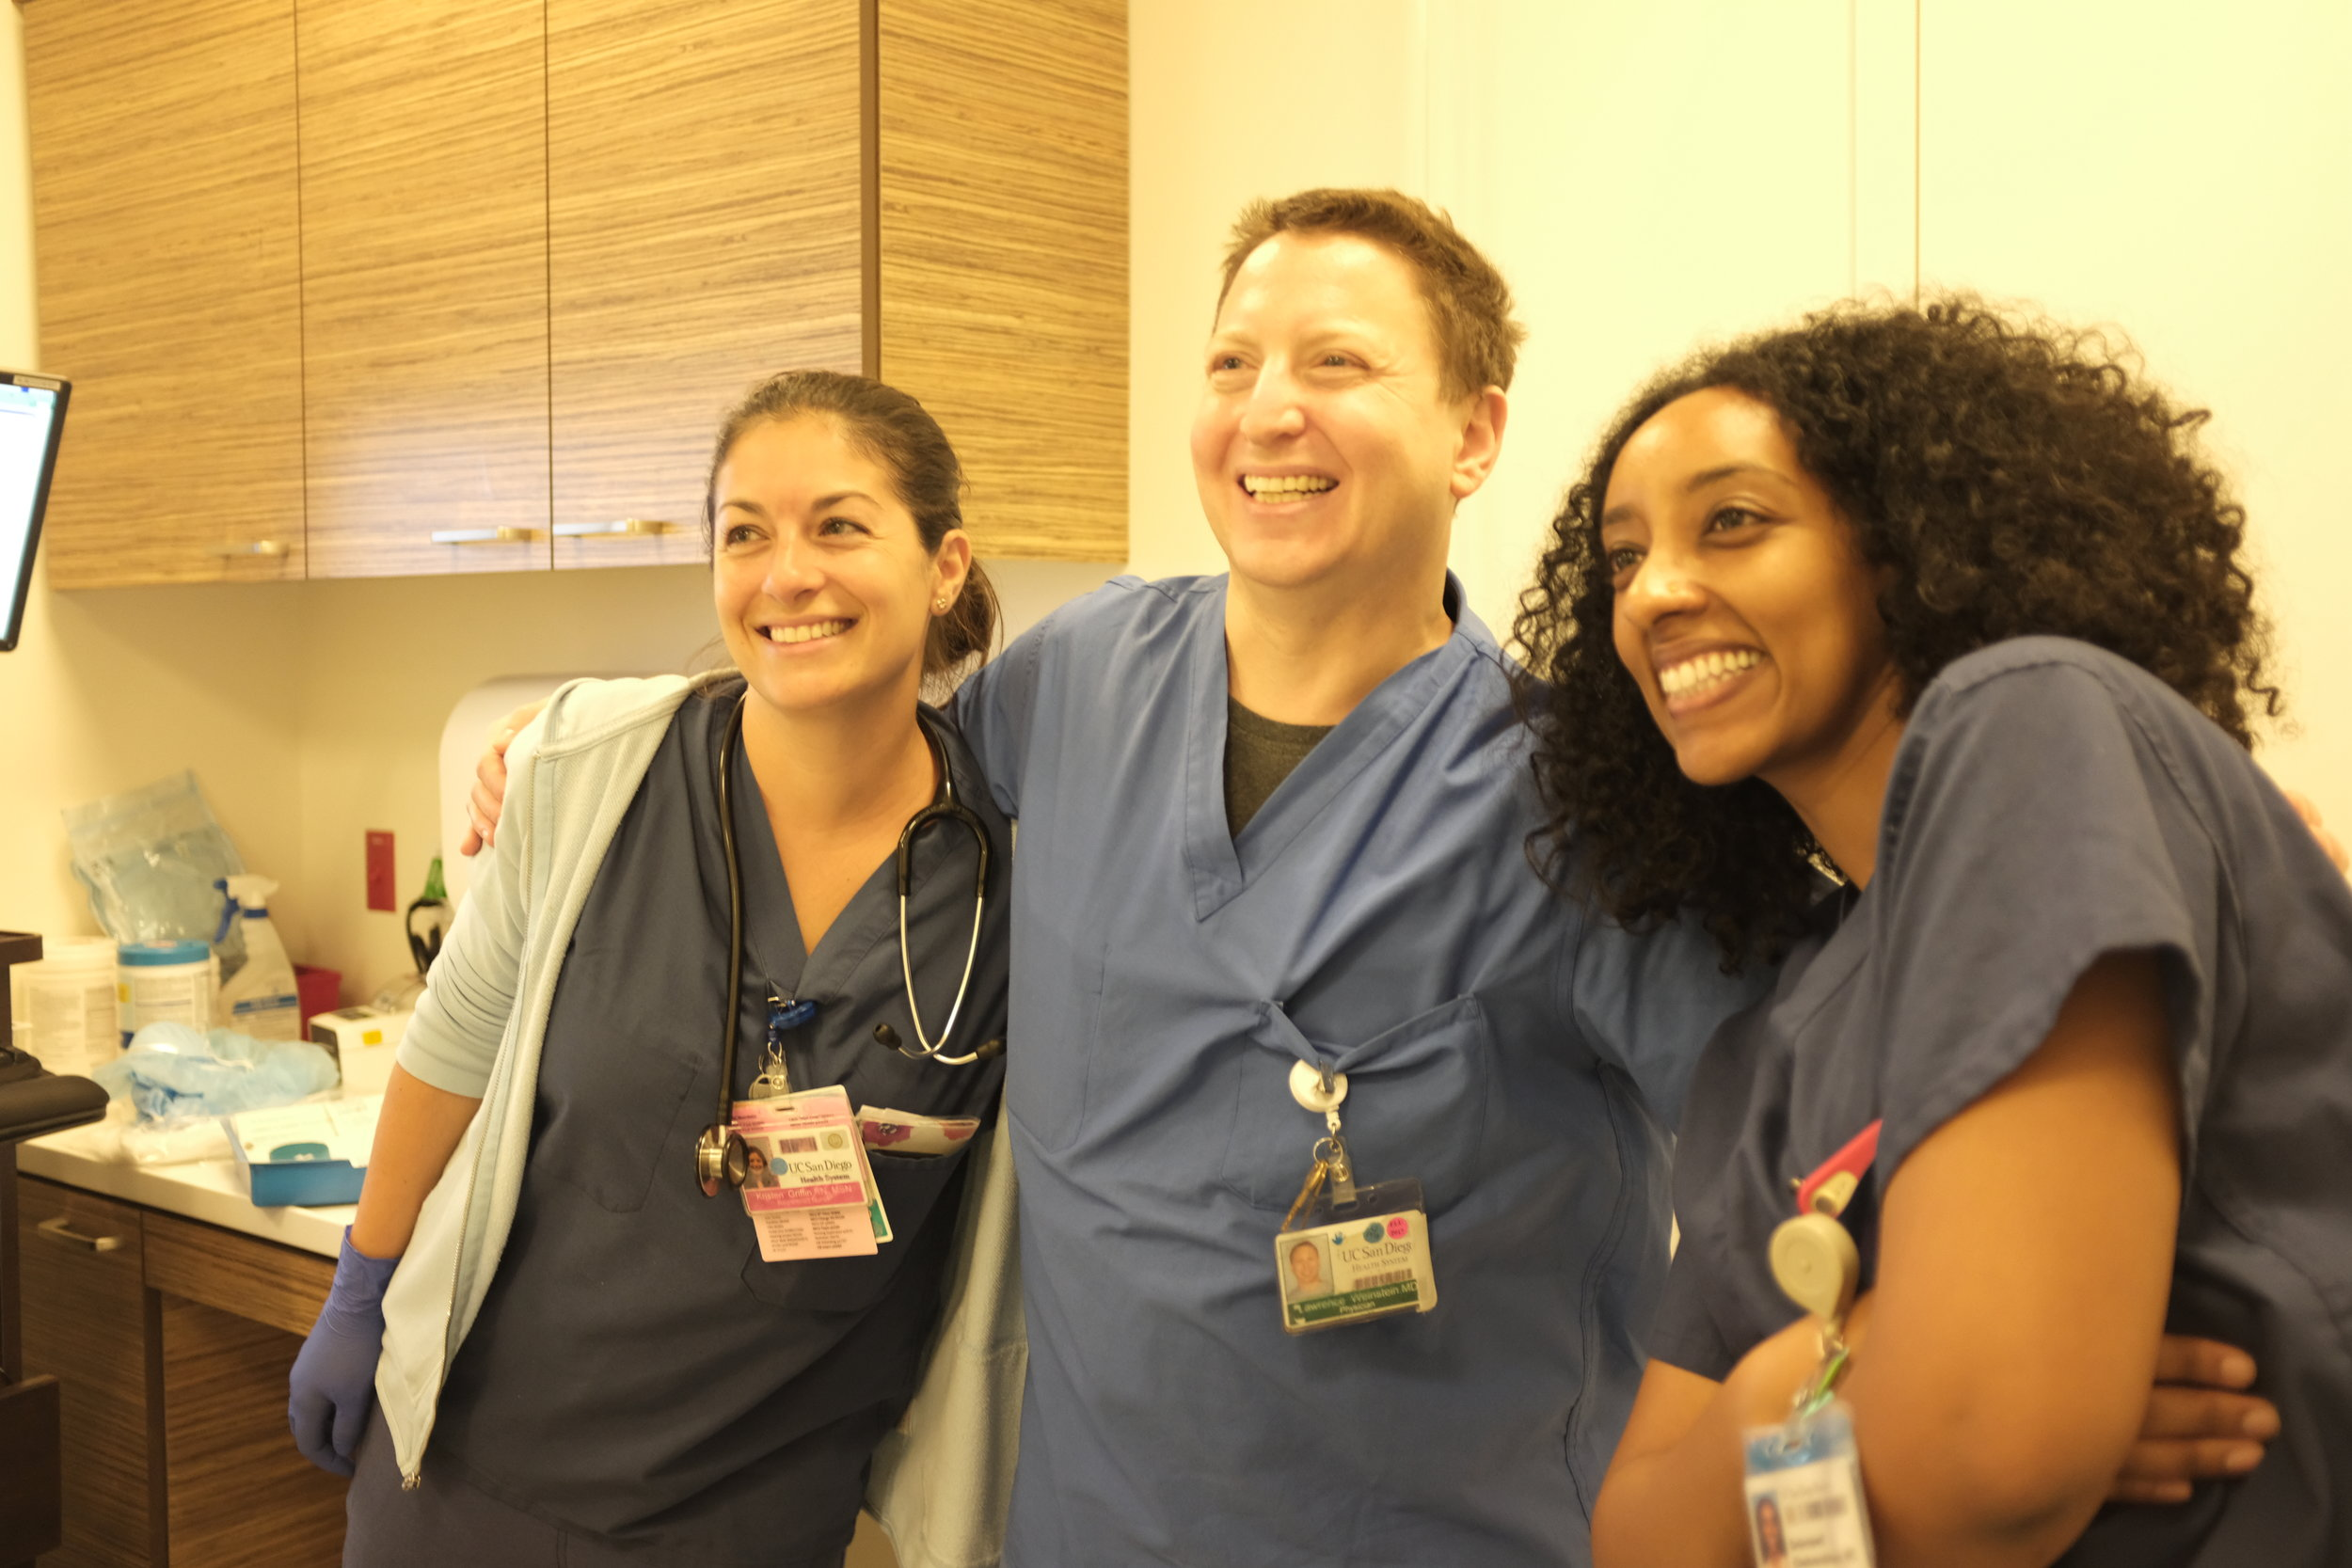 our amazing team - my nurse, anesthesiologist, and OB-GYN (my surgeon was already in the operating room)